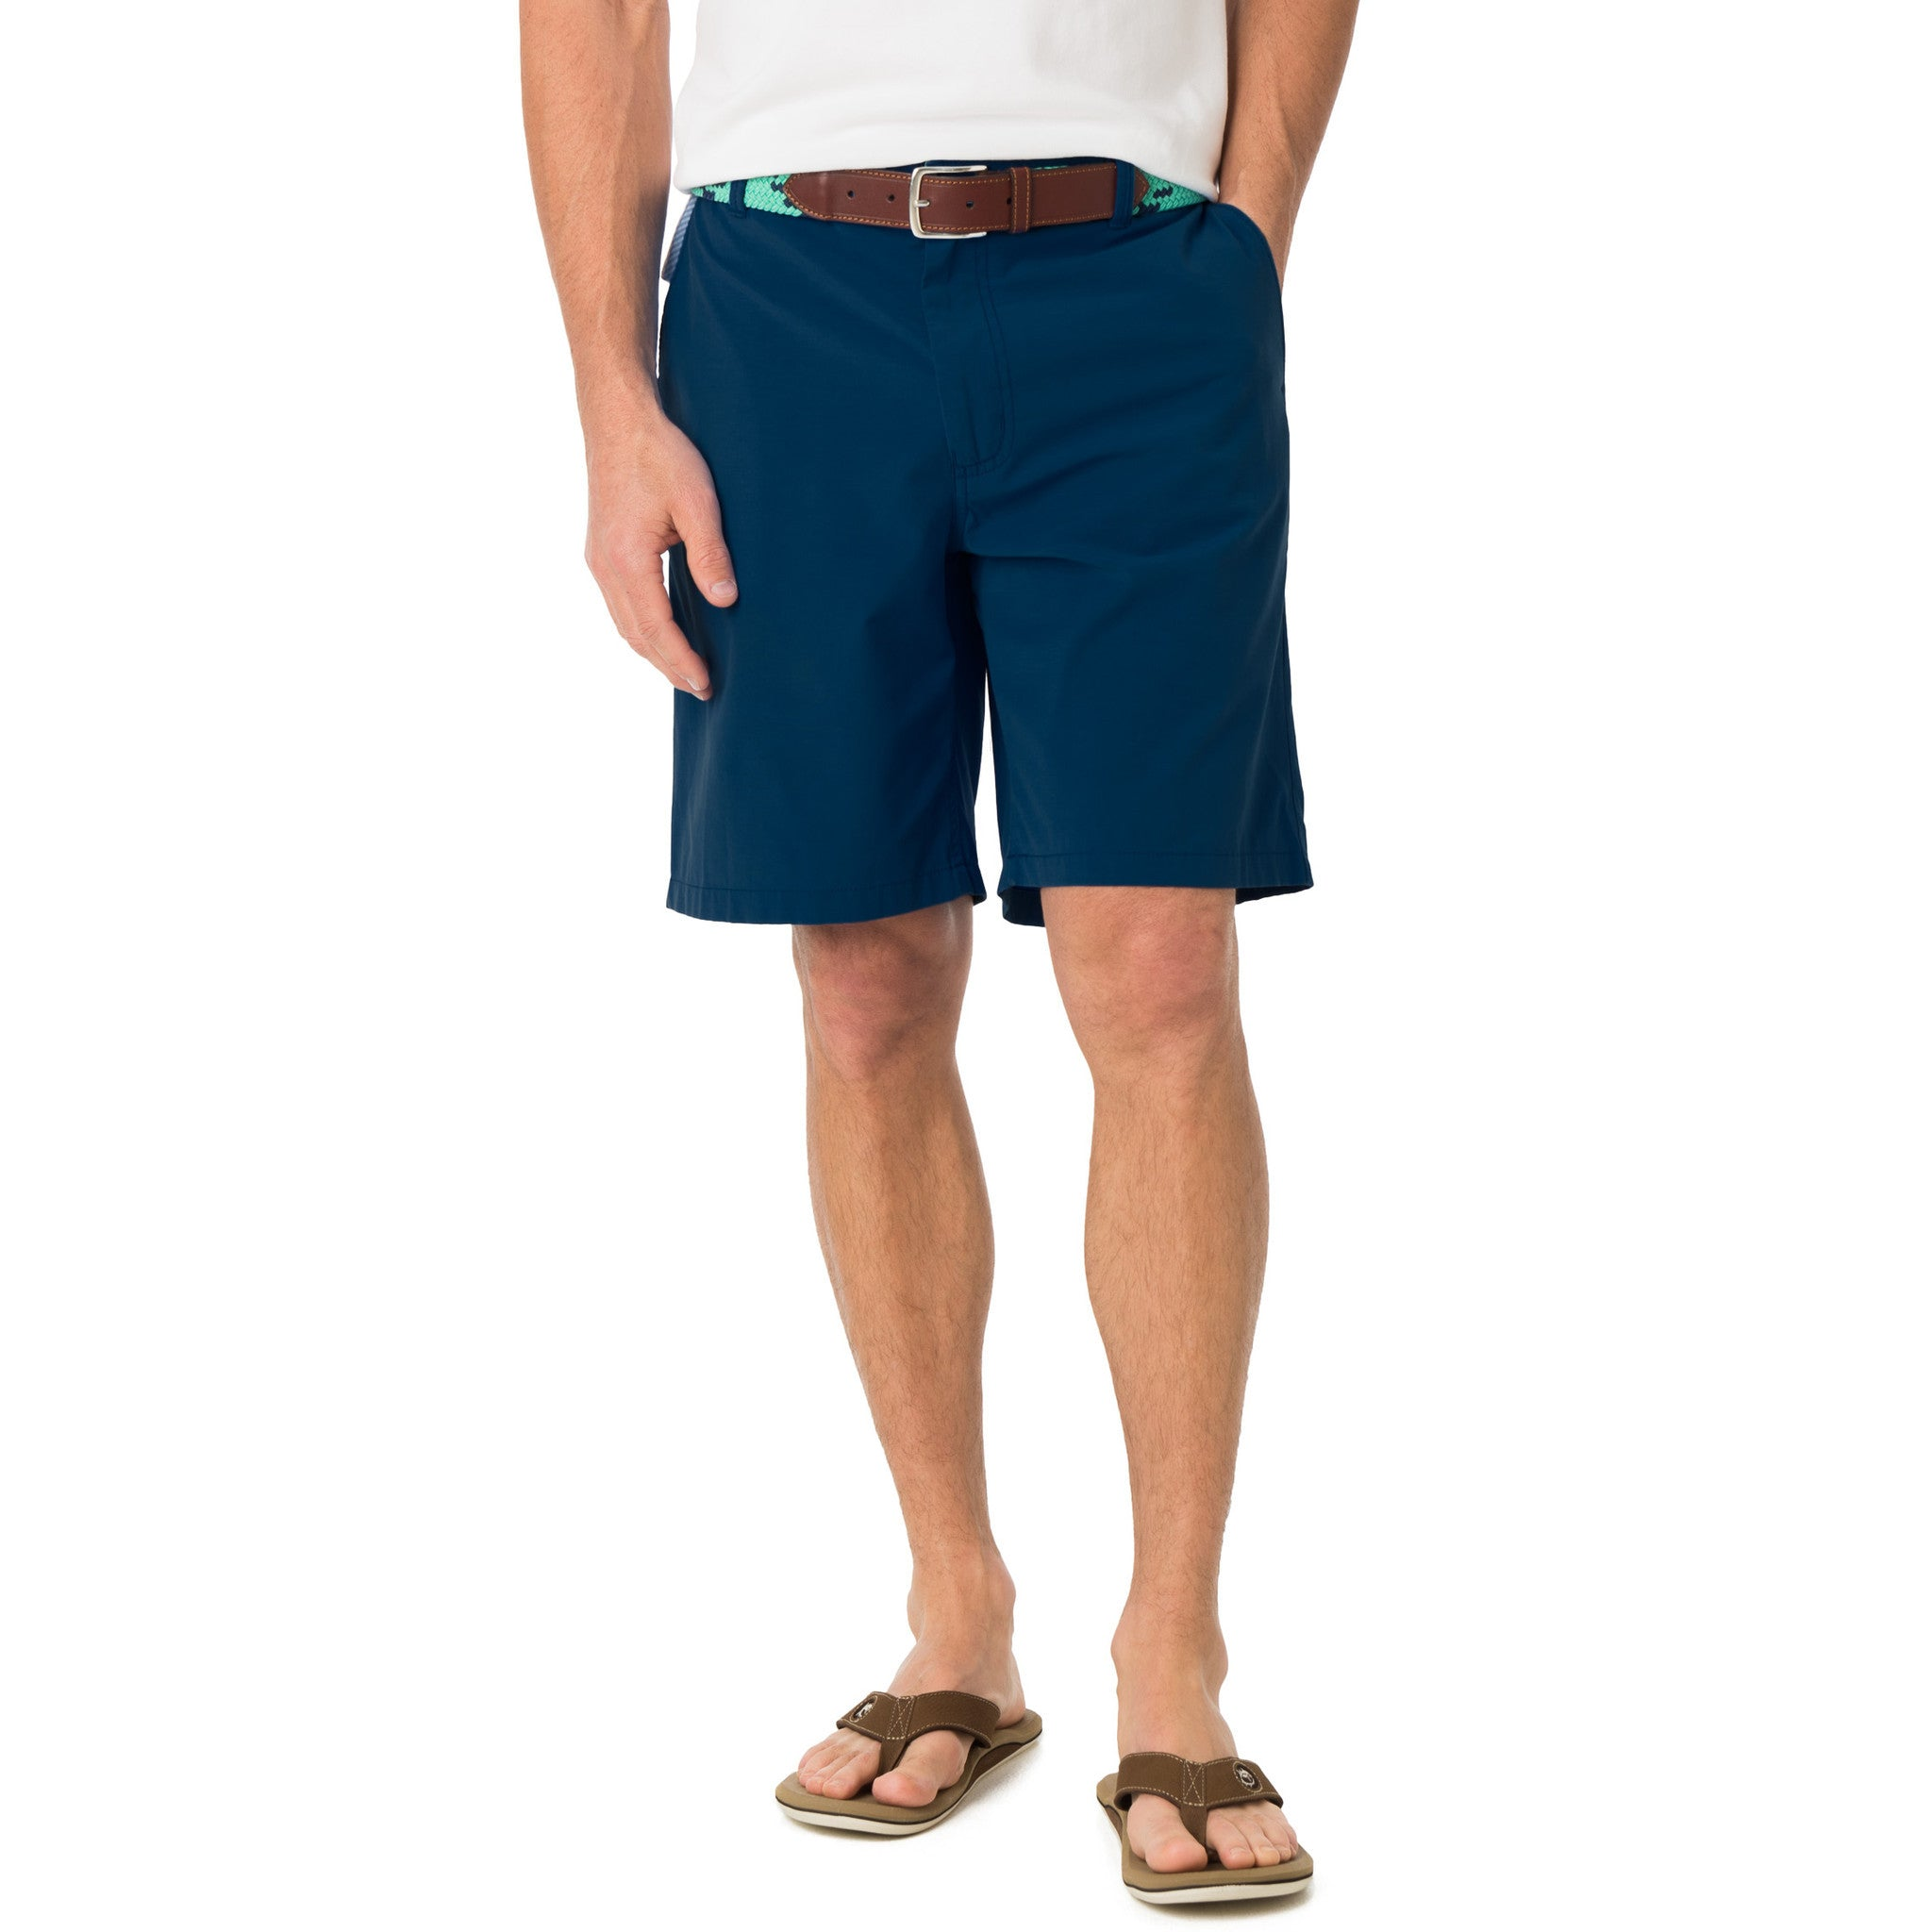 436f536494 Tide to Trail Performance Shorts | Southern Tide - Tide and Peak ...